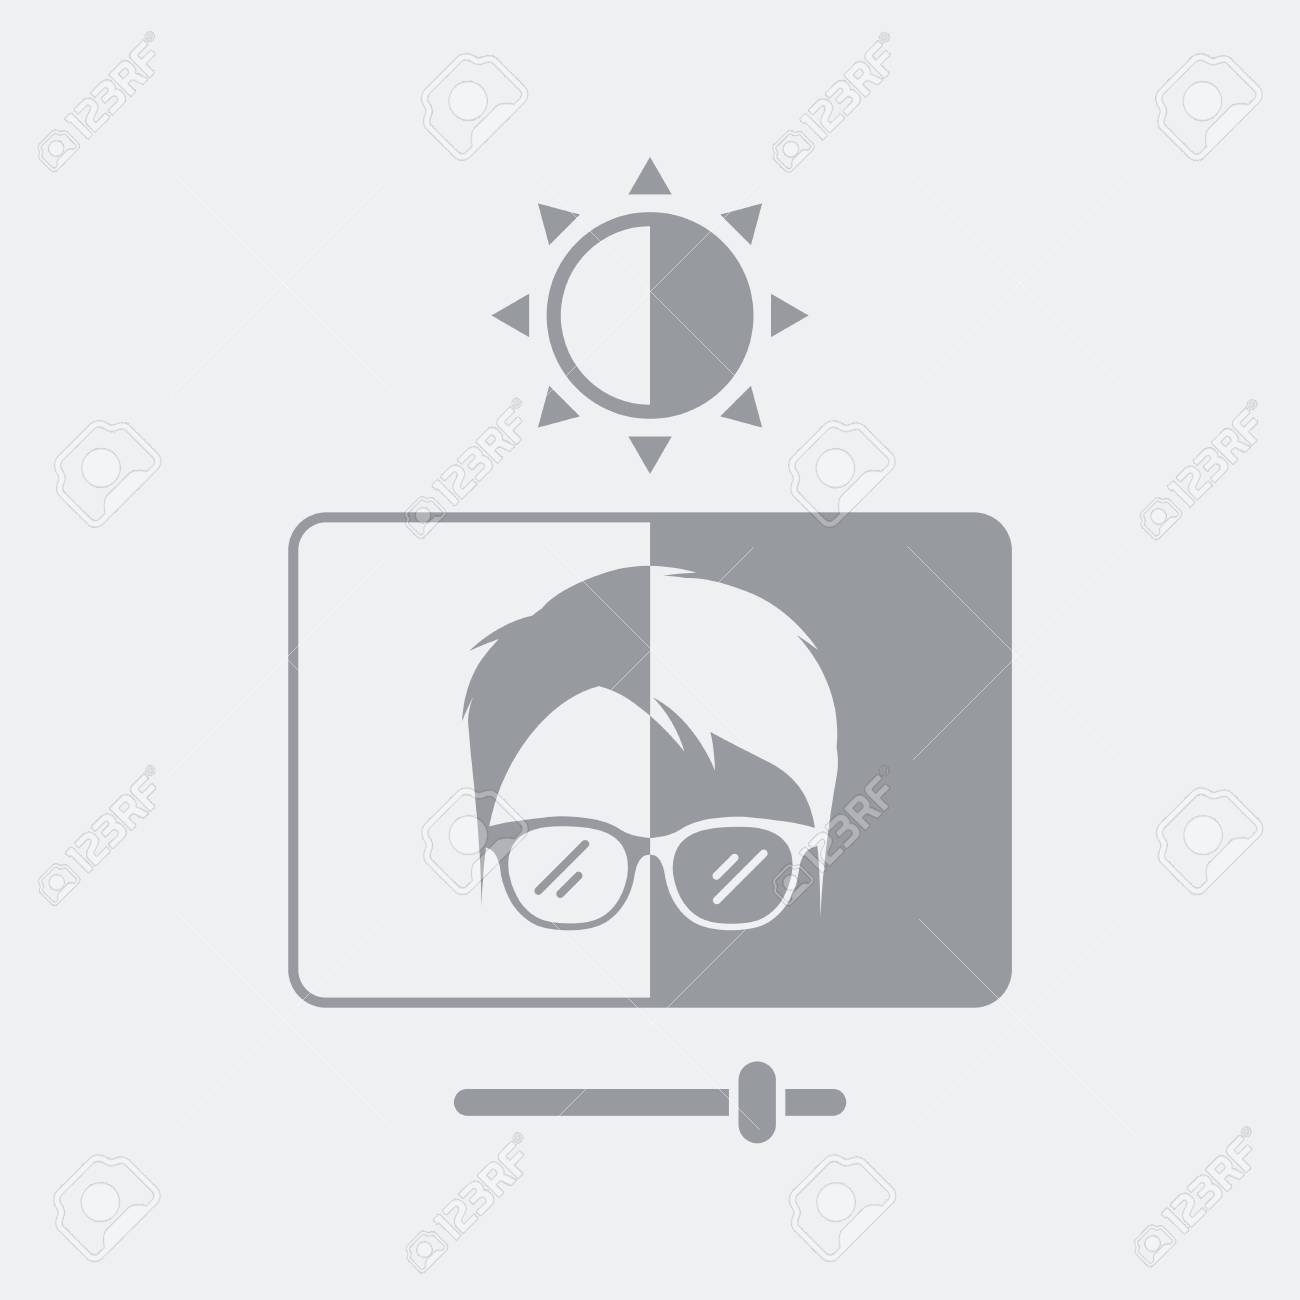 Flat and isolated vector illustration icon with minimal and modern design - 111885527